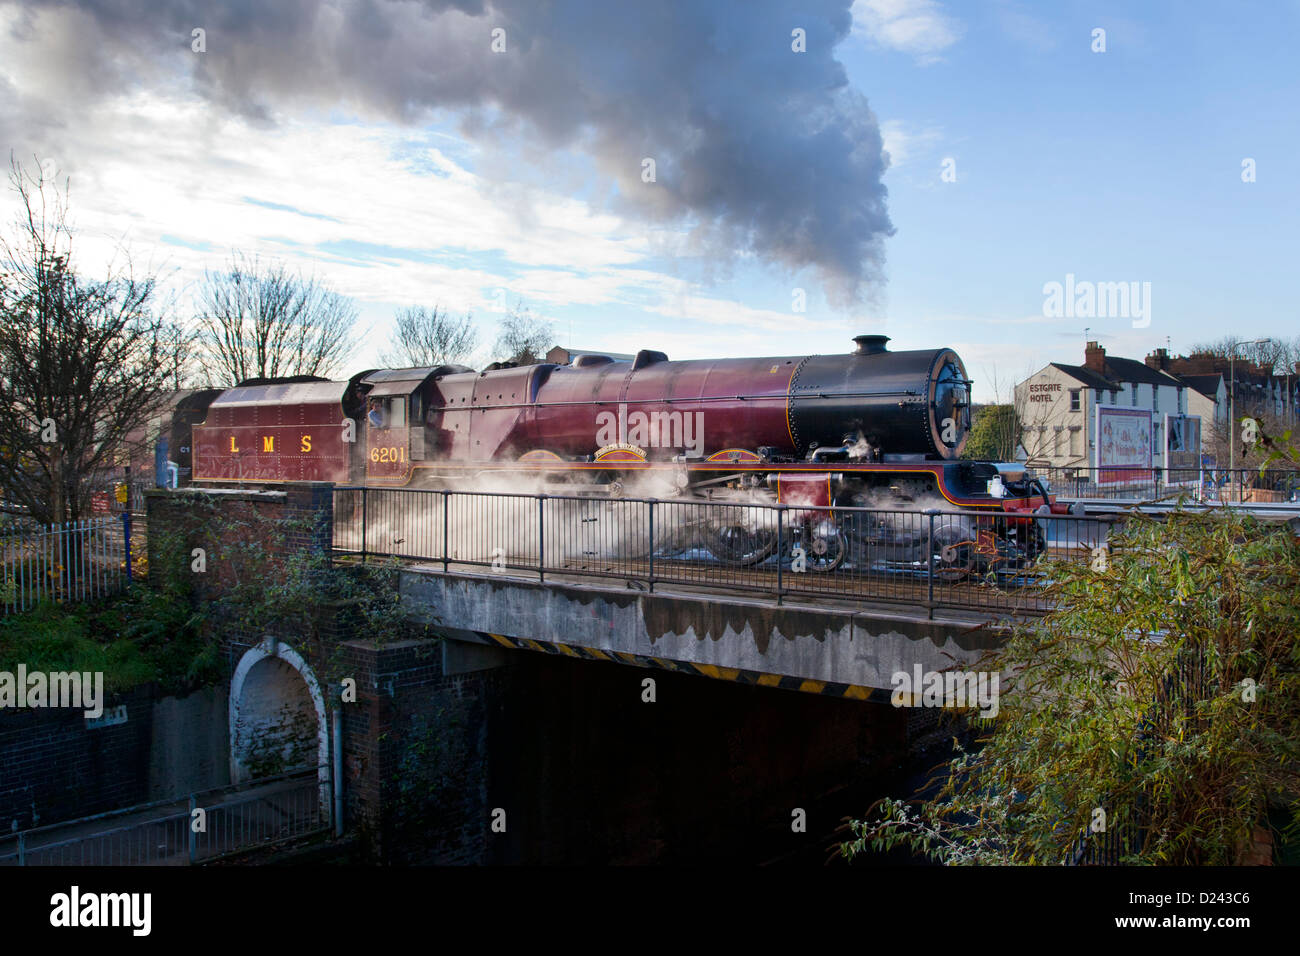 LMS Princess Elizabeth Royal Class steam locomotive leaving Oxford on a steam excursion in December 2012 - Stock Image